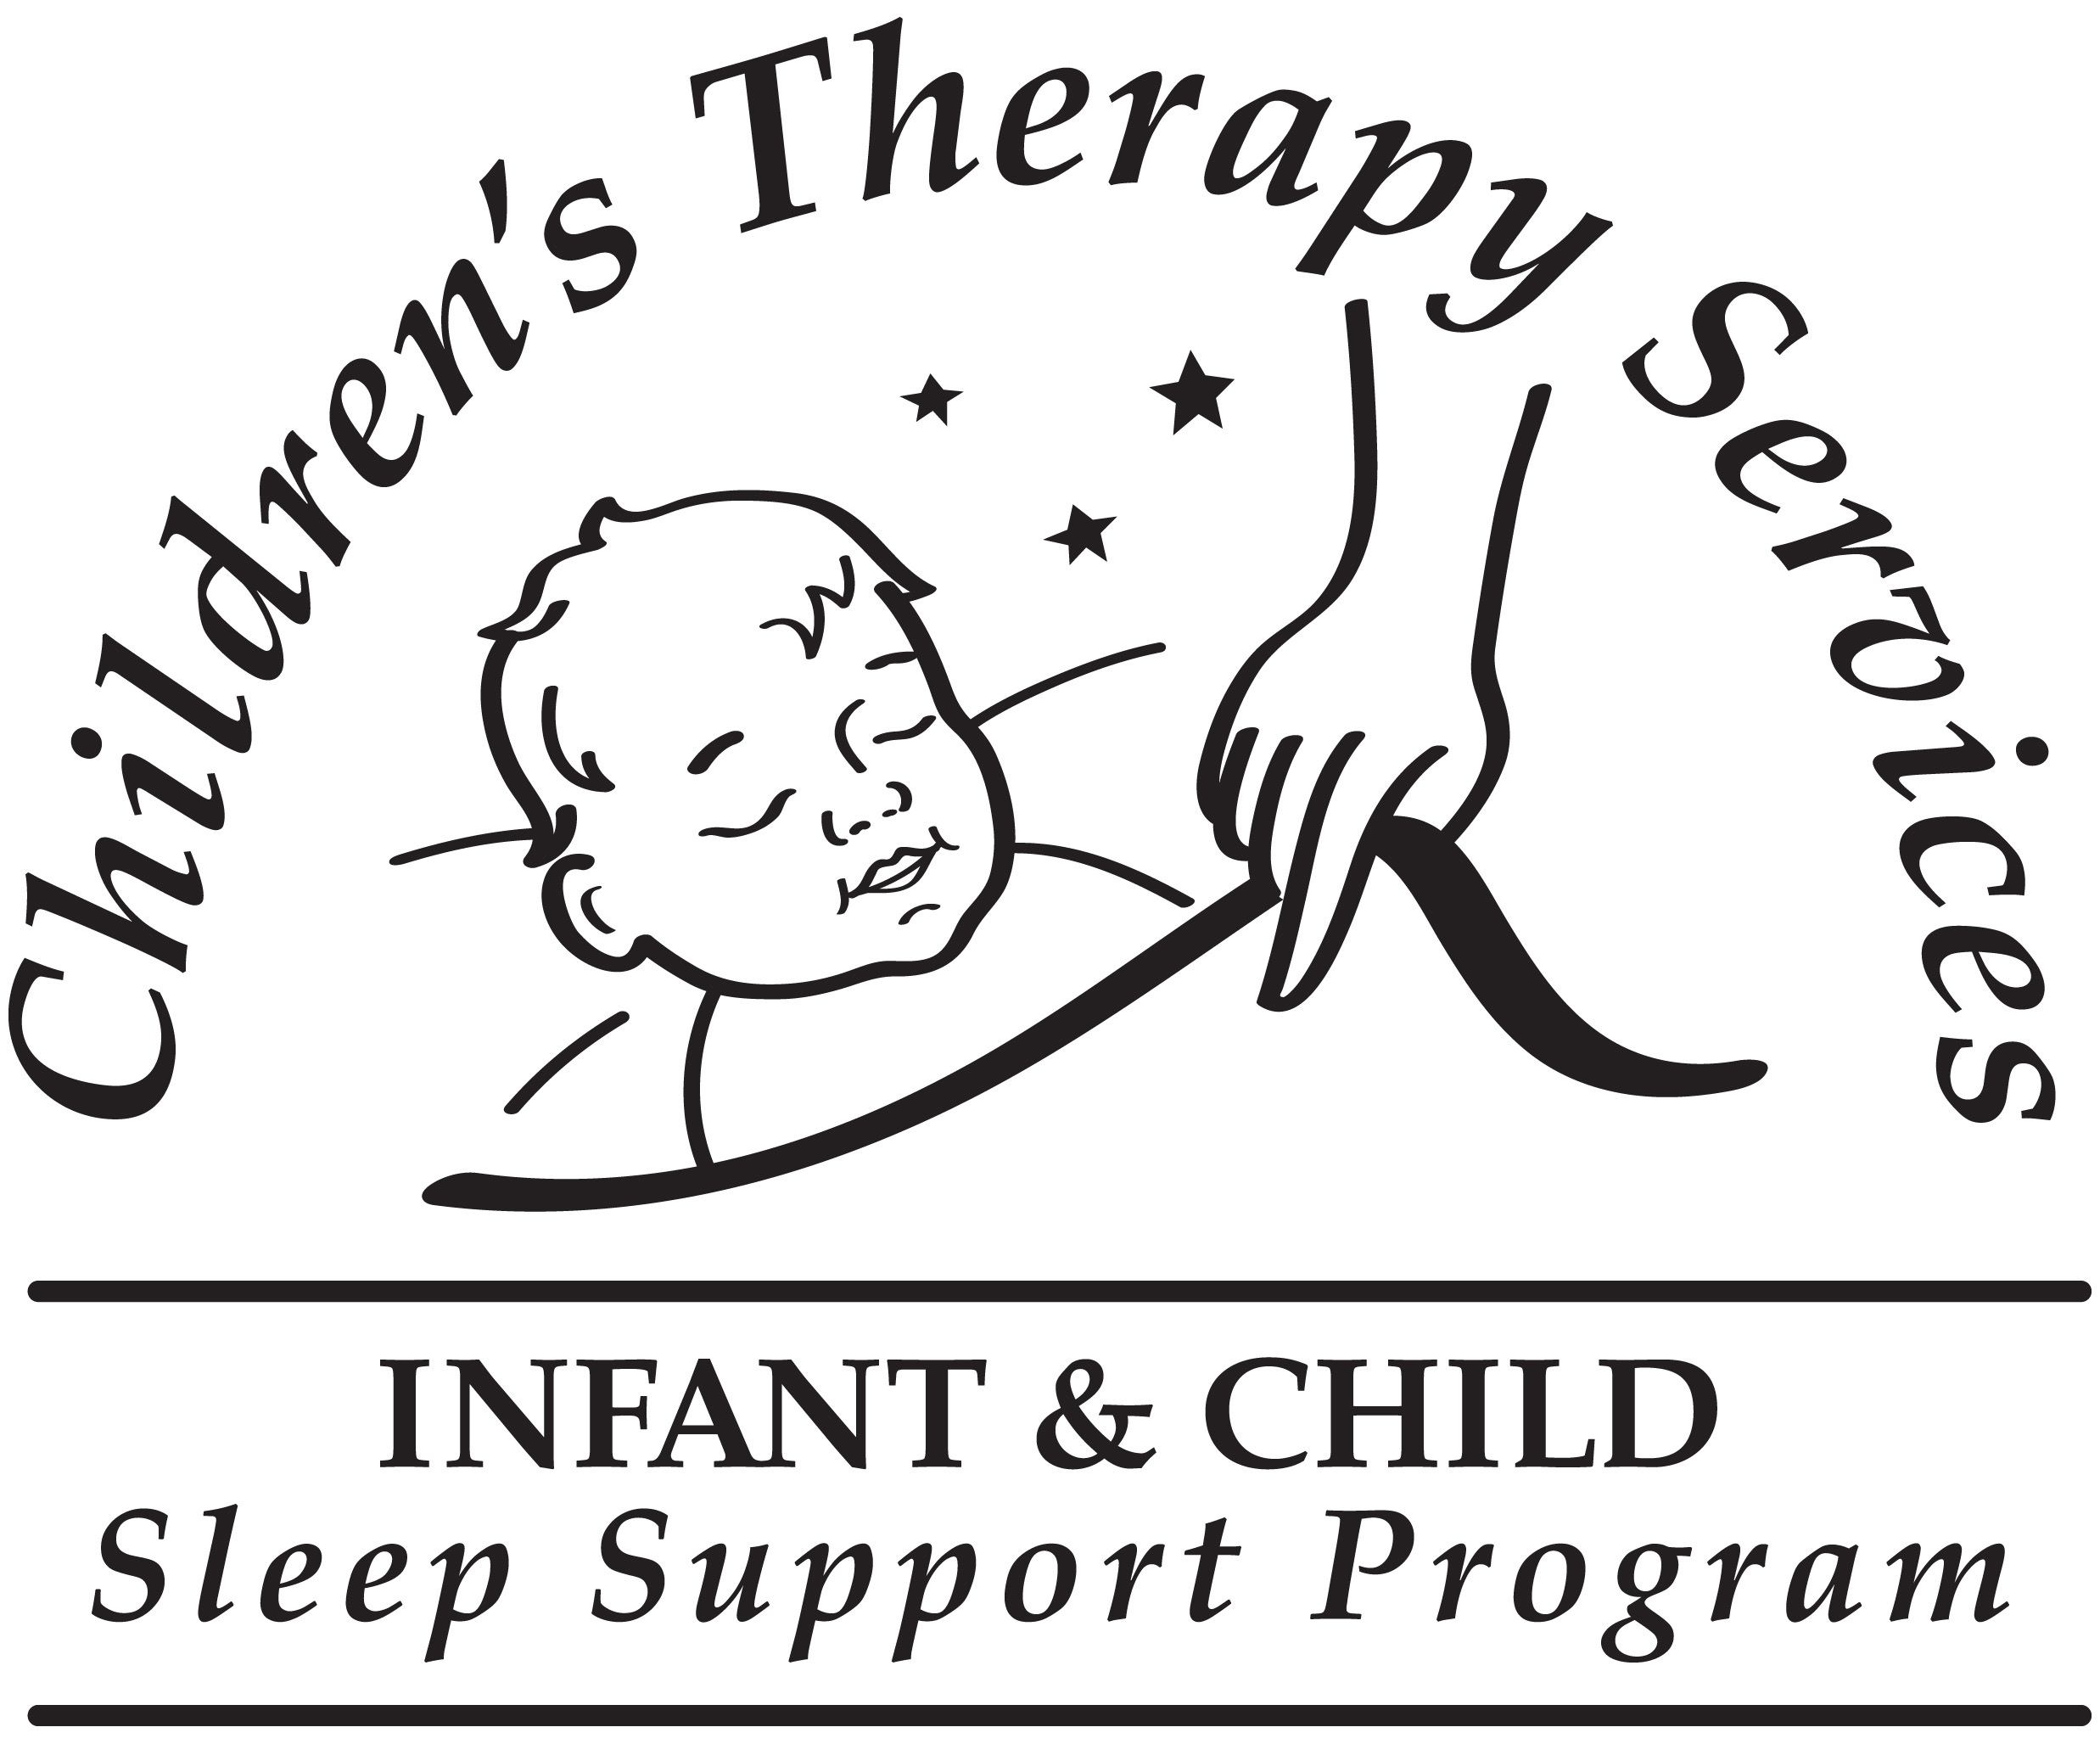 Child Sleep Consultant Certification Online Program - Children's Therapy Services Sleep Support Program